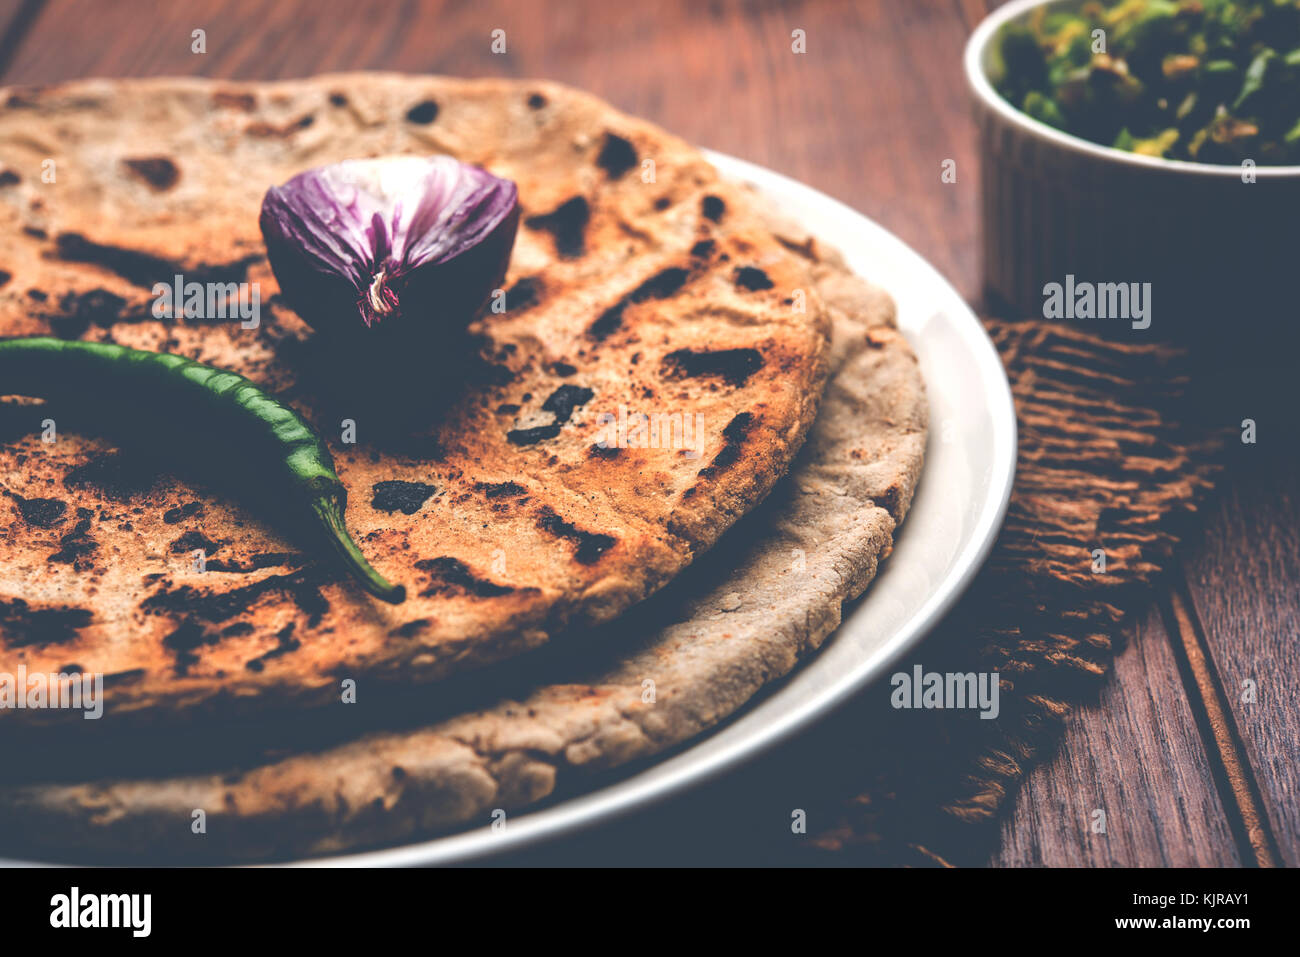 Bajra roti or Jowar Roti or Indian bread made using Bajra or Jowar, served with green chilly thecha - Stock Image